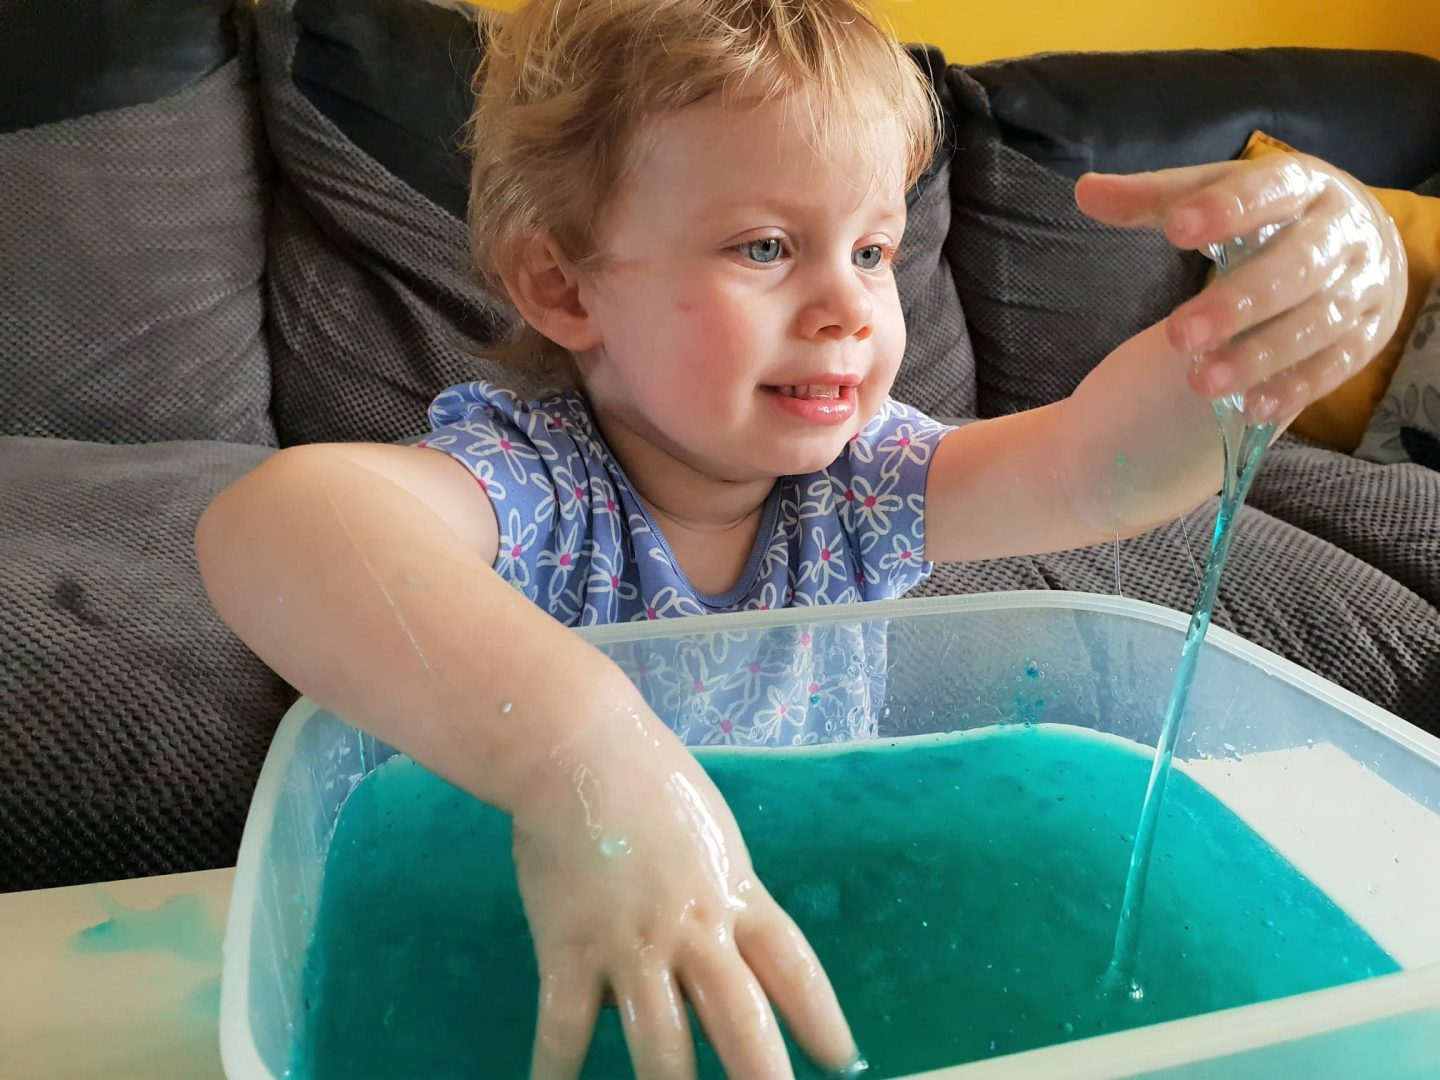 Toddler watching string of slime